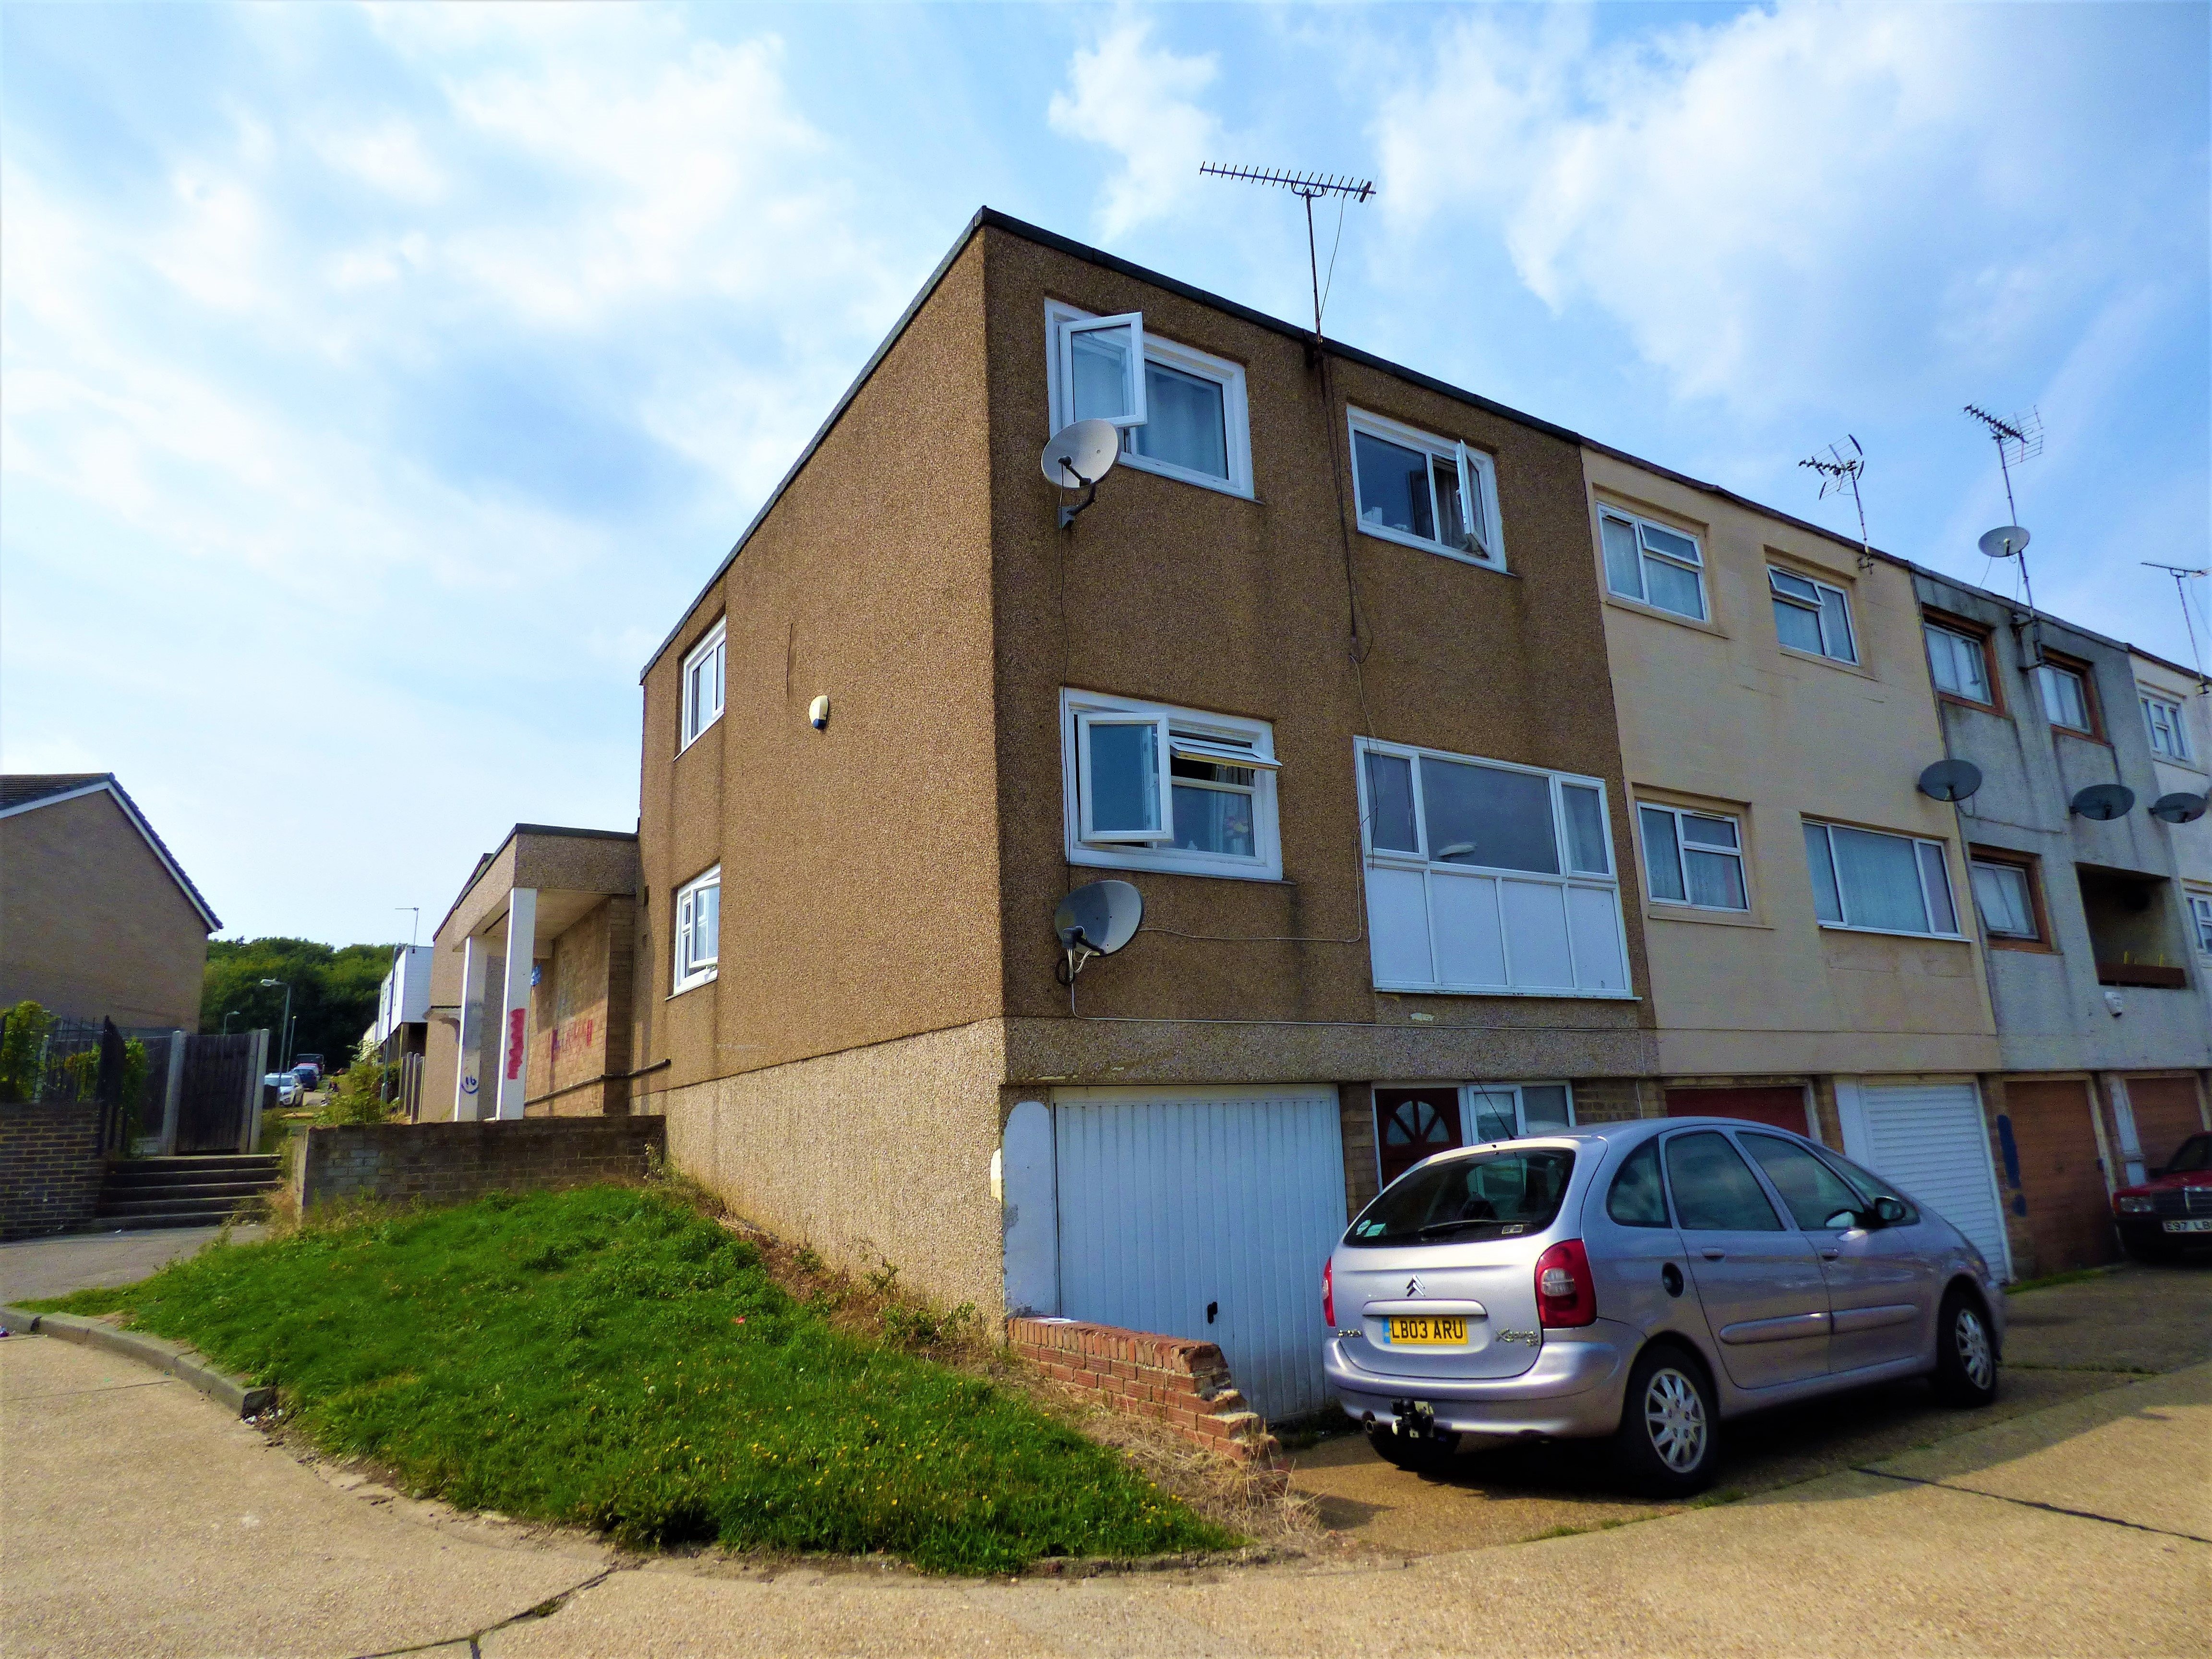 4 bed end of terrace house for sale in Swanstead, Basildon - Property Image 1